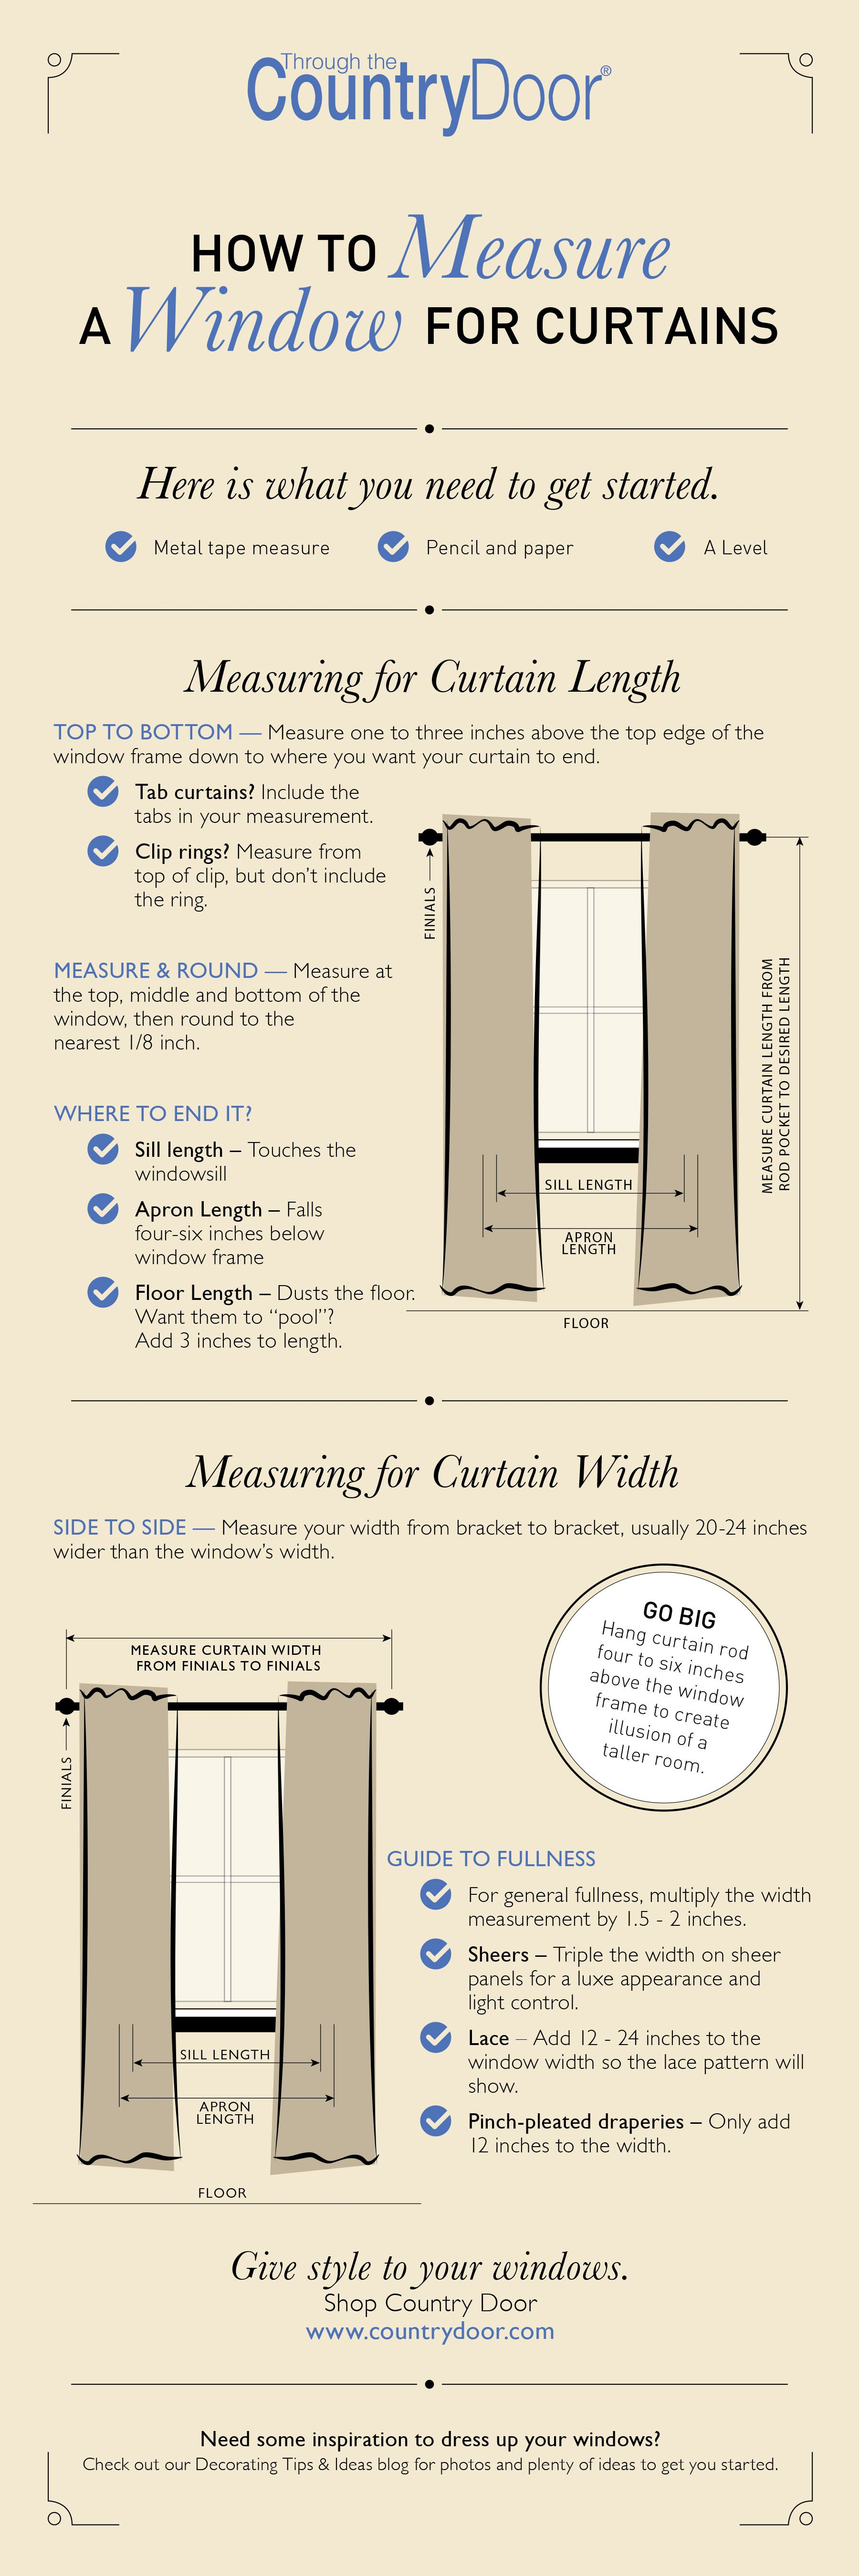 3 window bedroom curtains  how to measure a window for curtains  curtains  pinterest  window